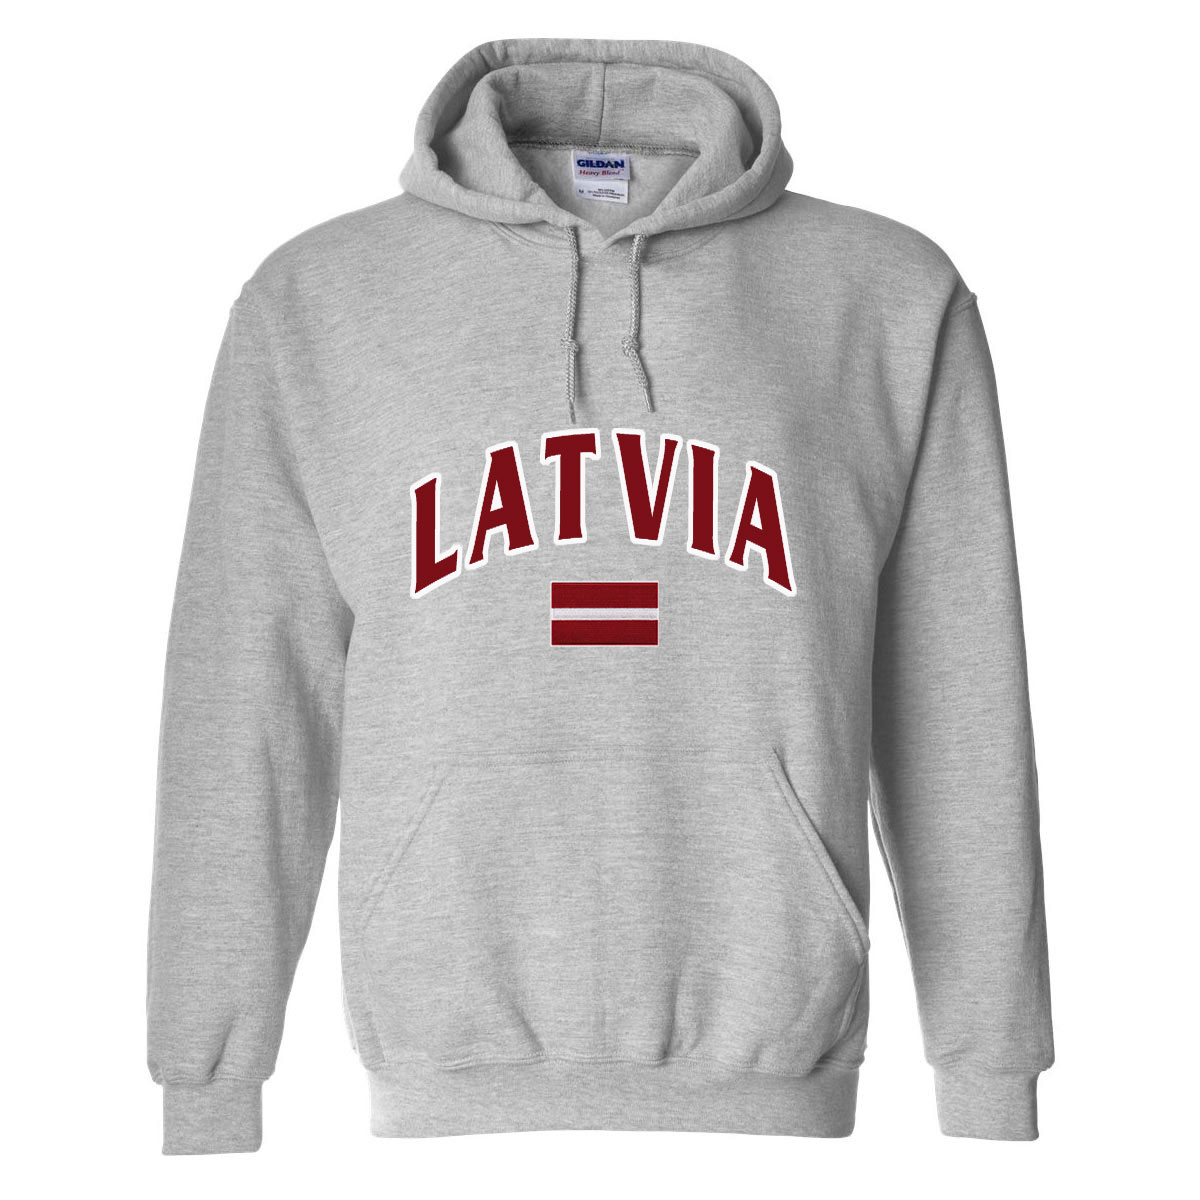 Latvia MyCountry Pullover Arch Hoody (Sport Gray) - Large